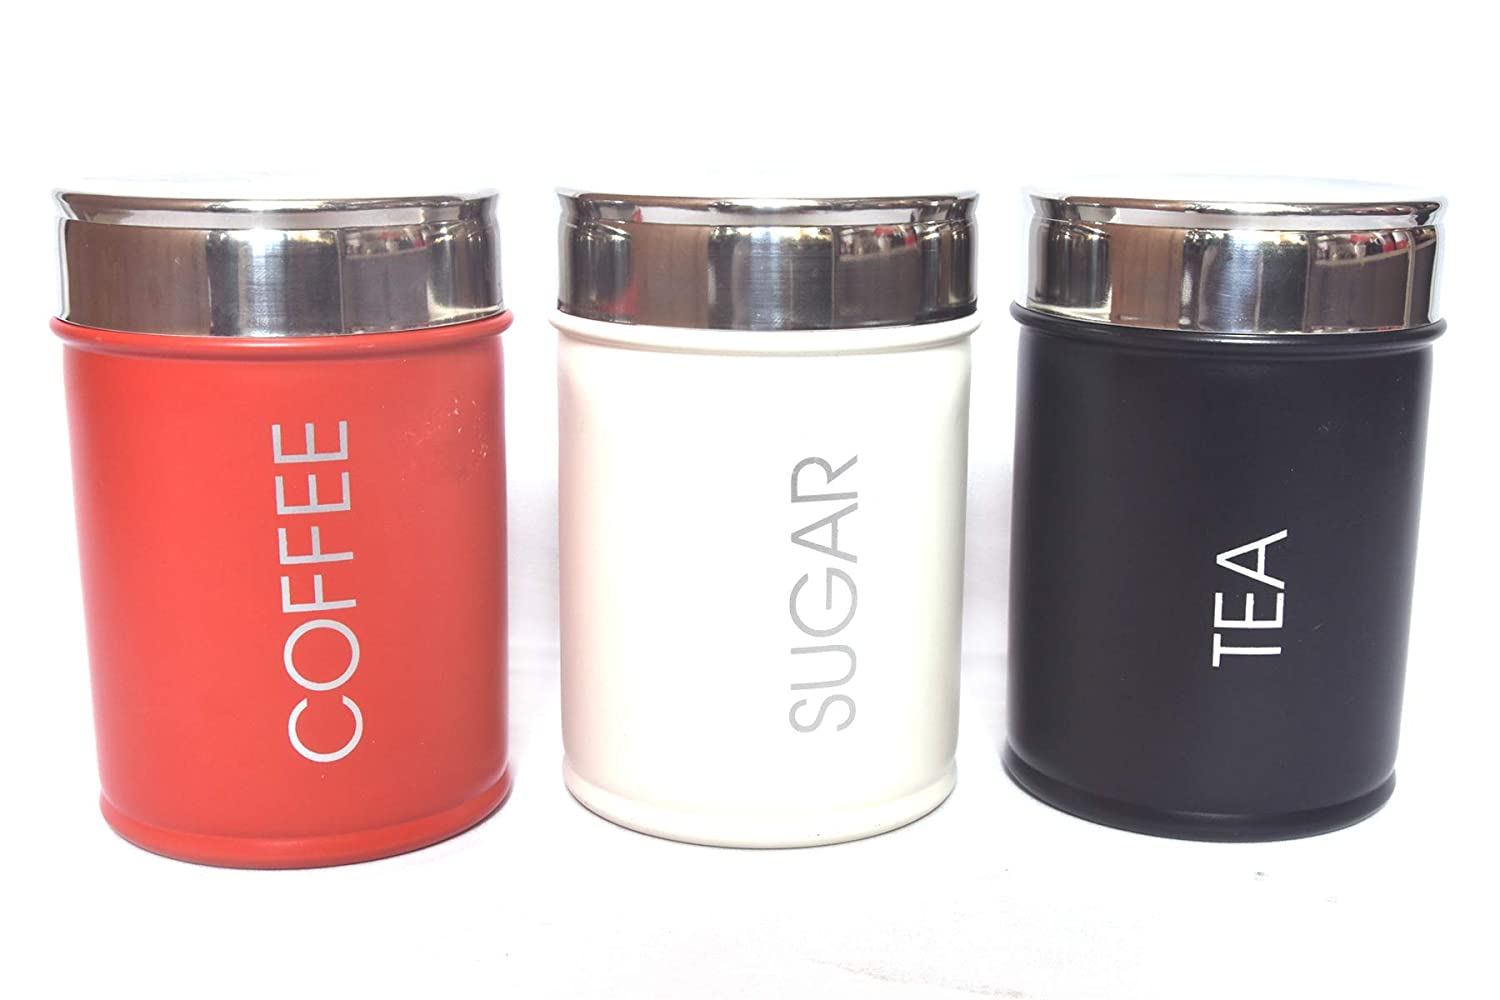 Steel Canister Set with Airtight Lid; Set Contains Tea, Coffee and Sugar Canisters; Black/White and Red